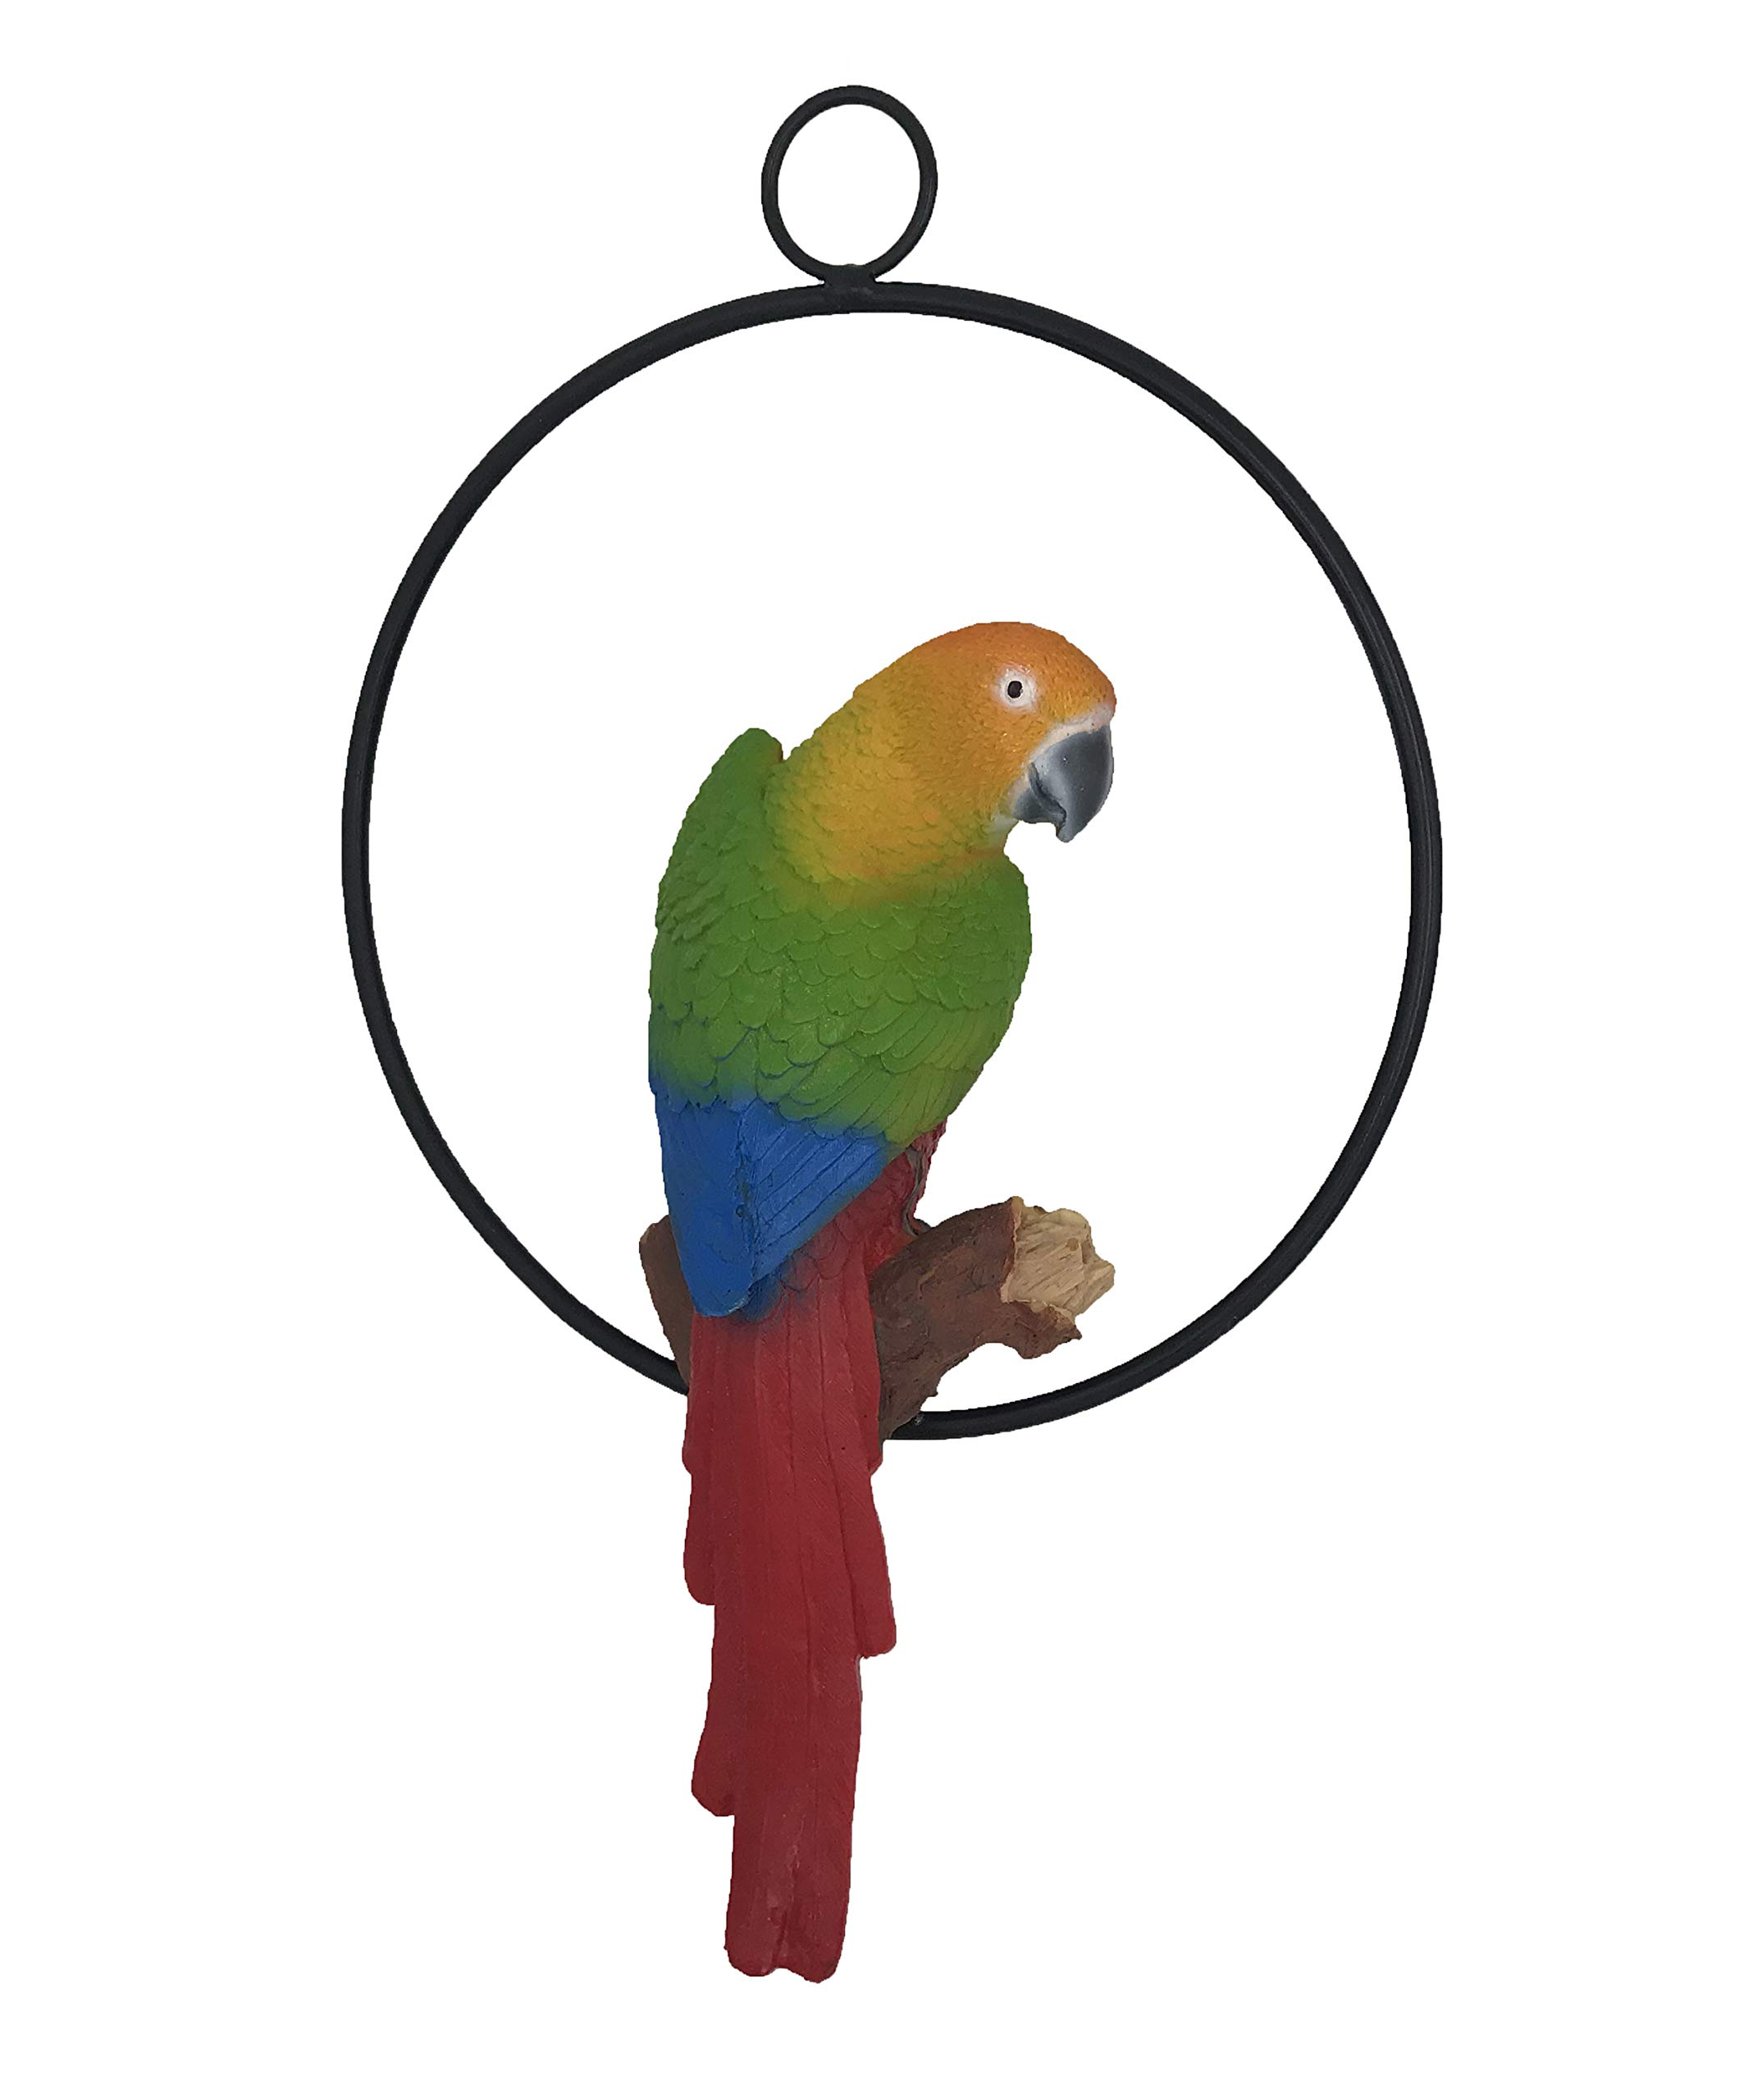 Hanging Parrot Statue Sculpture On Metal Round Ring Decor for Patio Garden Lawn and Nature Lovers Tropical Bird Collectors by Gifts